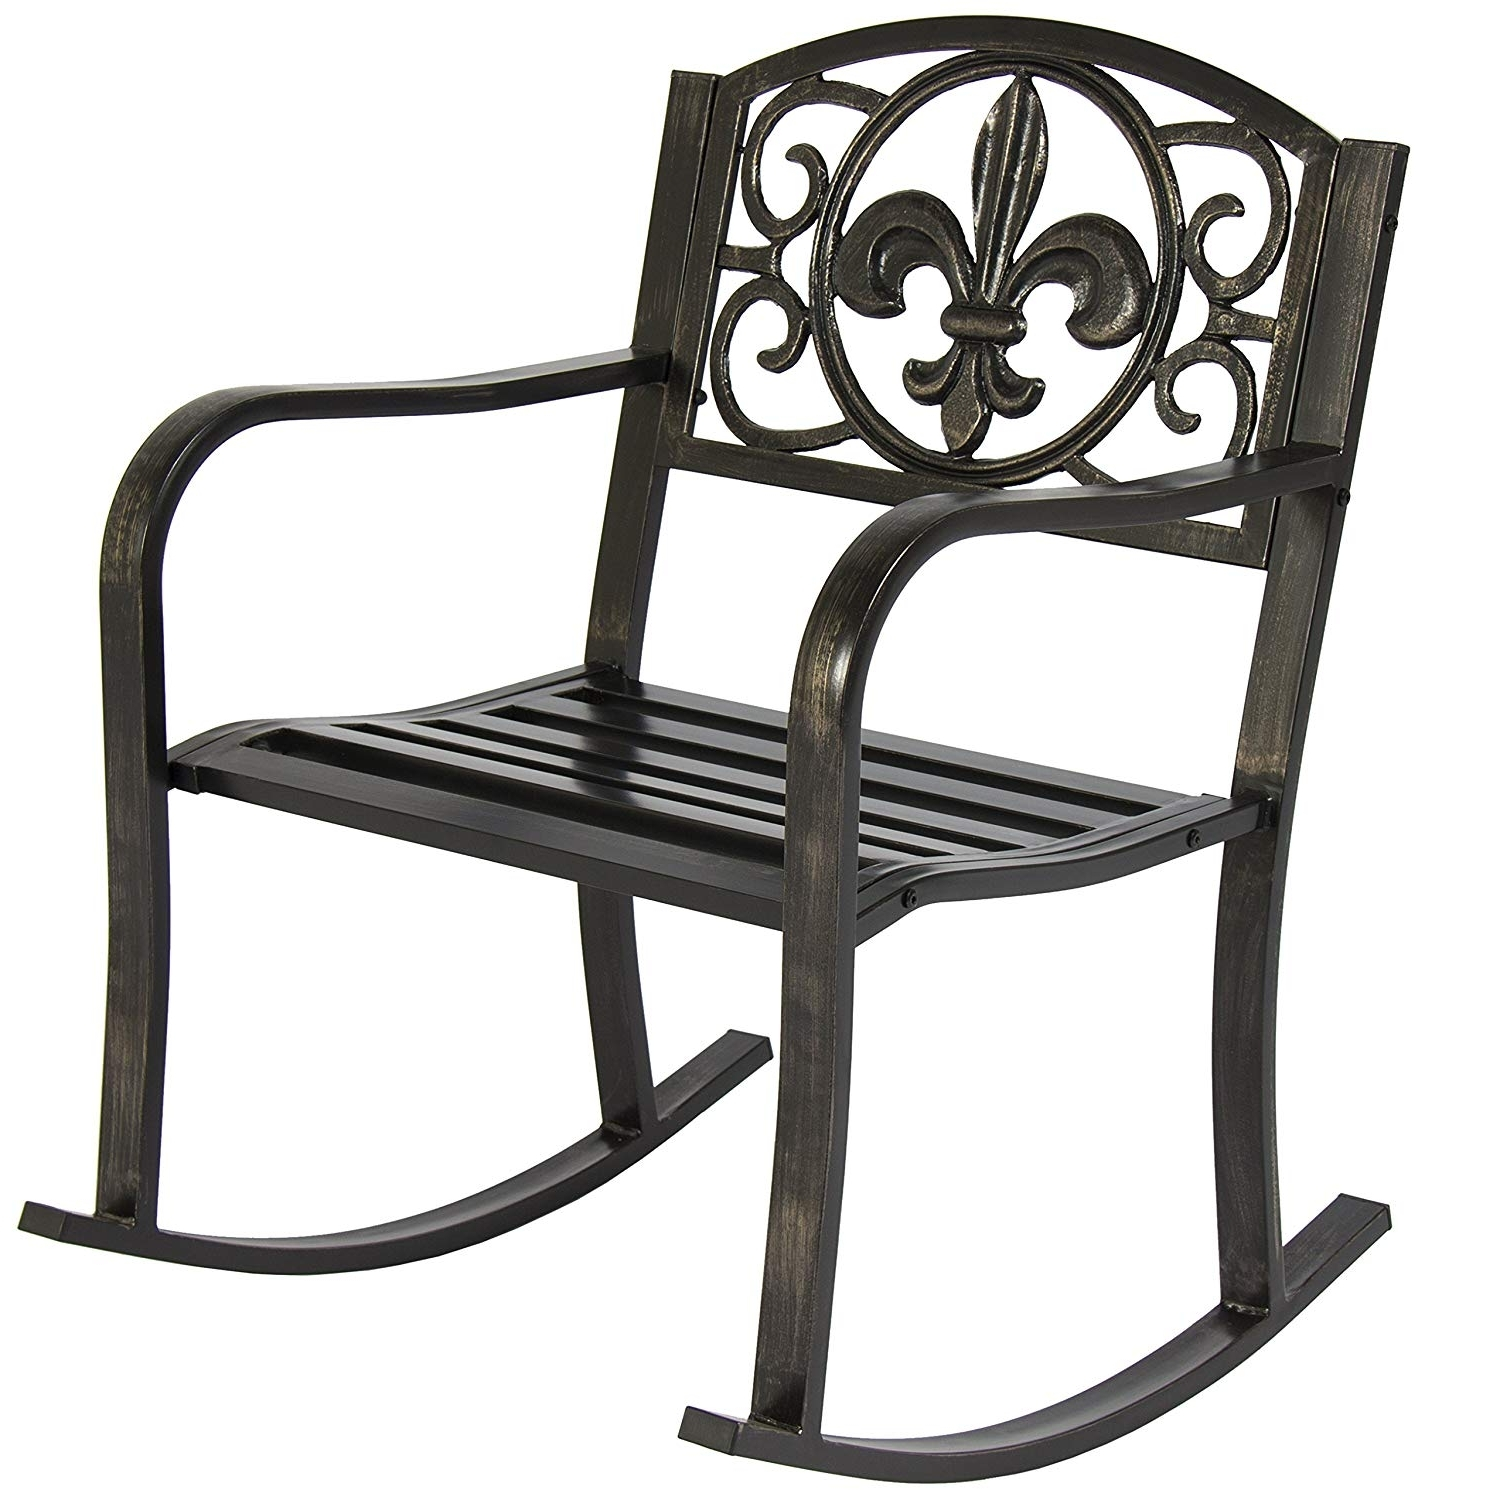 Patio Rocking Chairs And Gliders For Newest Amazon : Best Choice Products Metal Rocking Chair Seat For Patio (View 15 of 15)